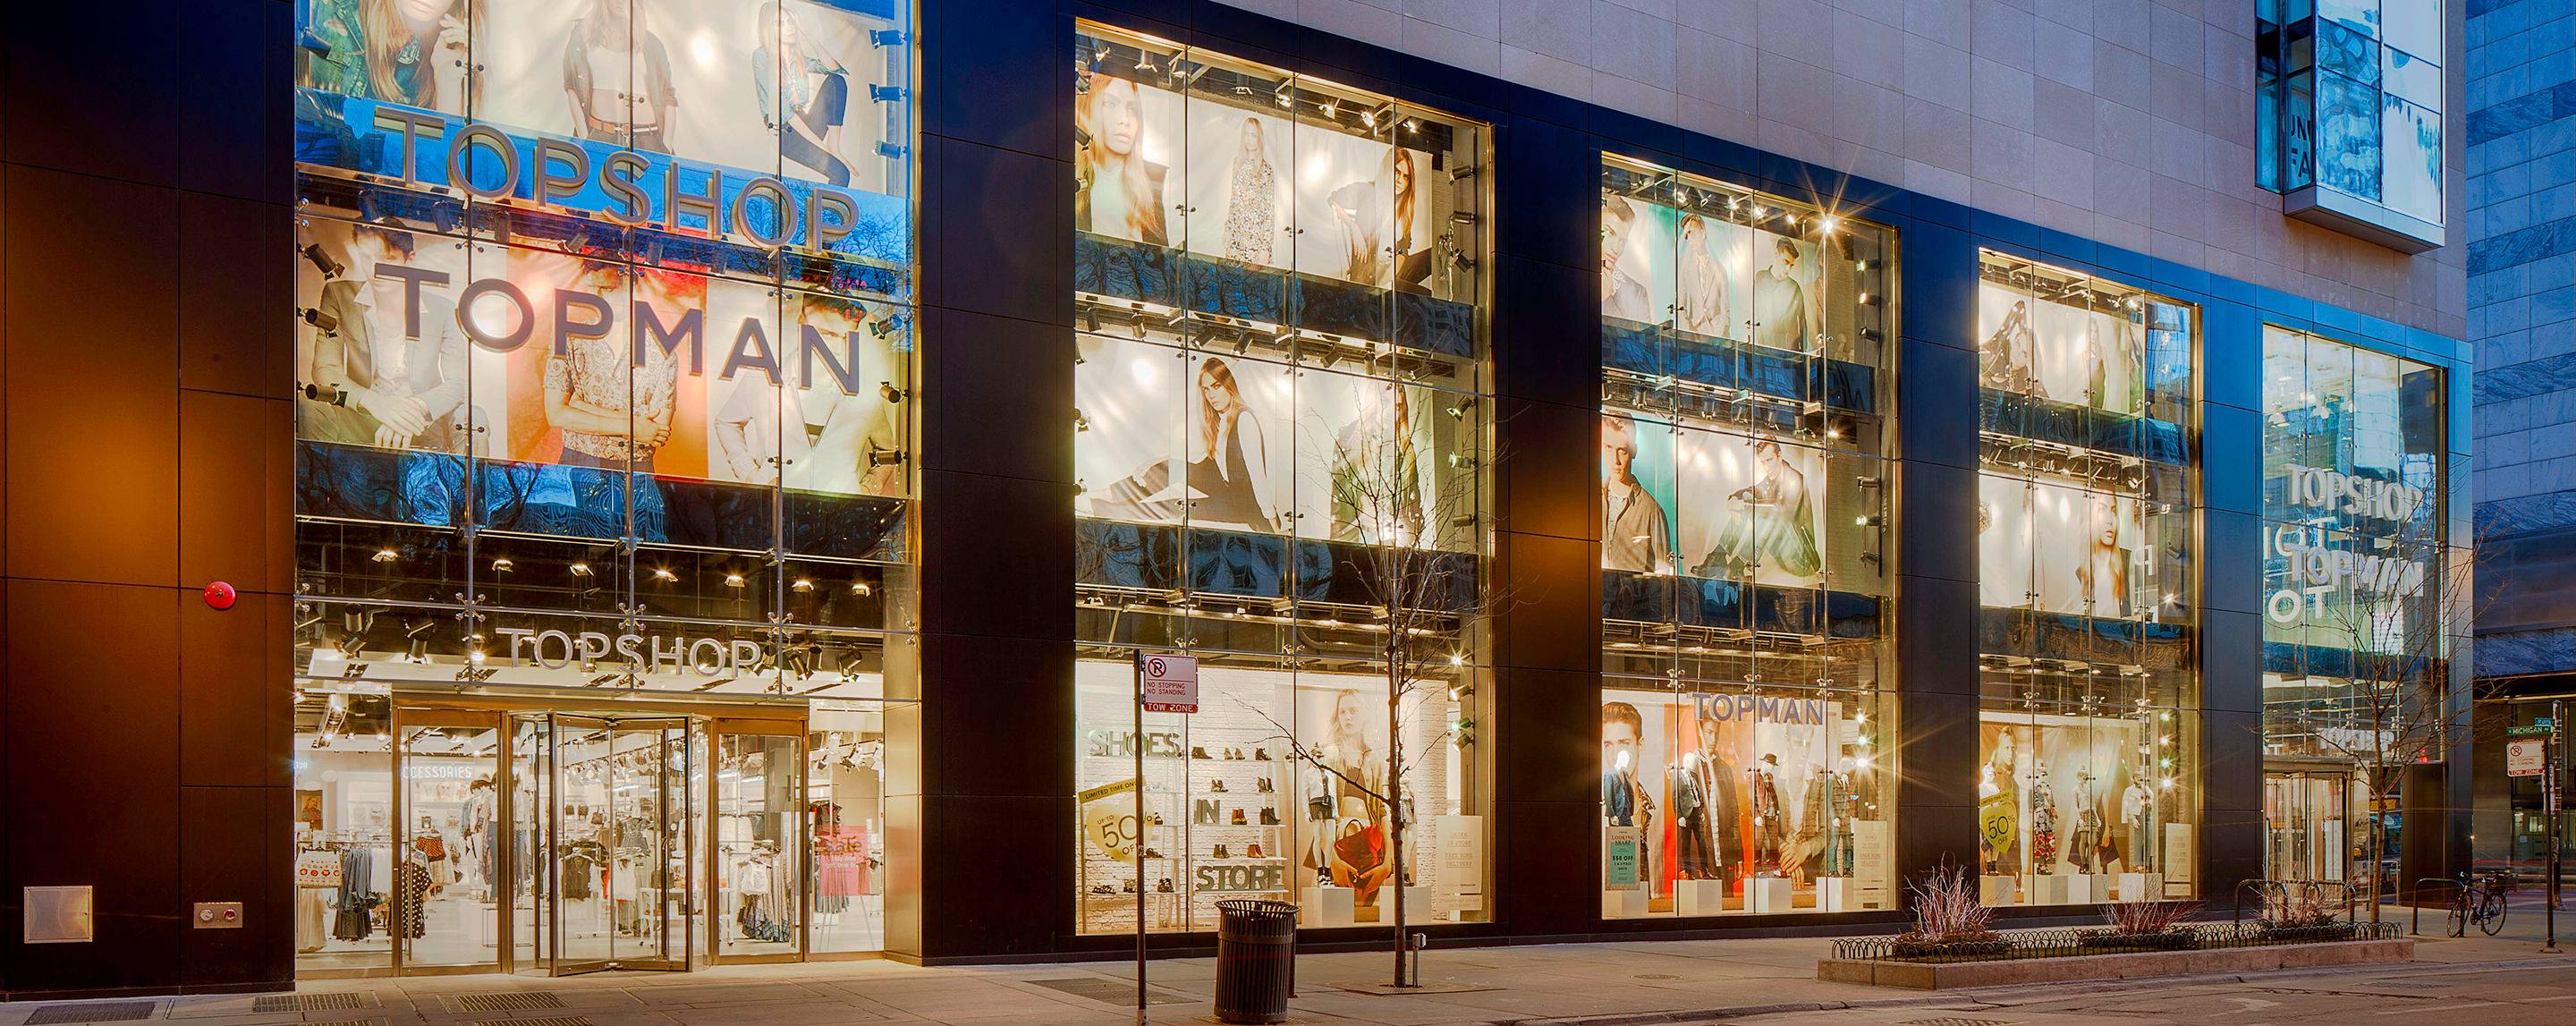 The property on 830 North Michigan Ave highlights the Top Shop retailer with brightly lit storefronts.